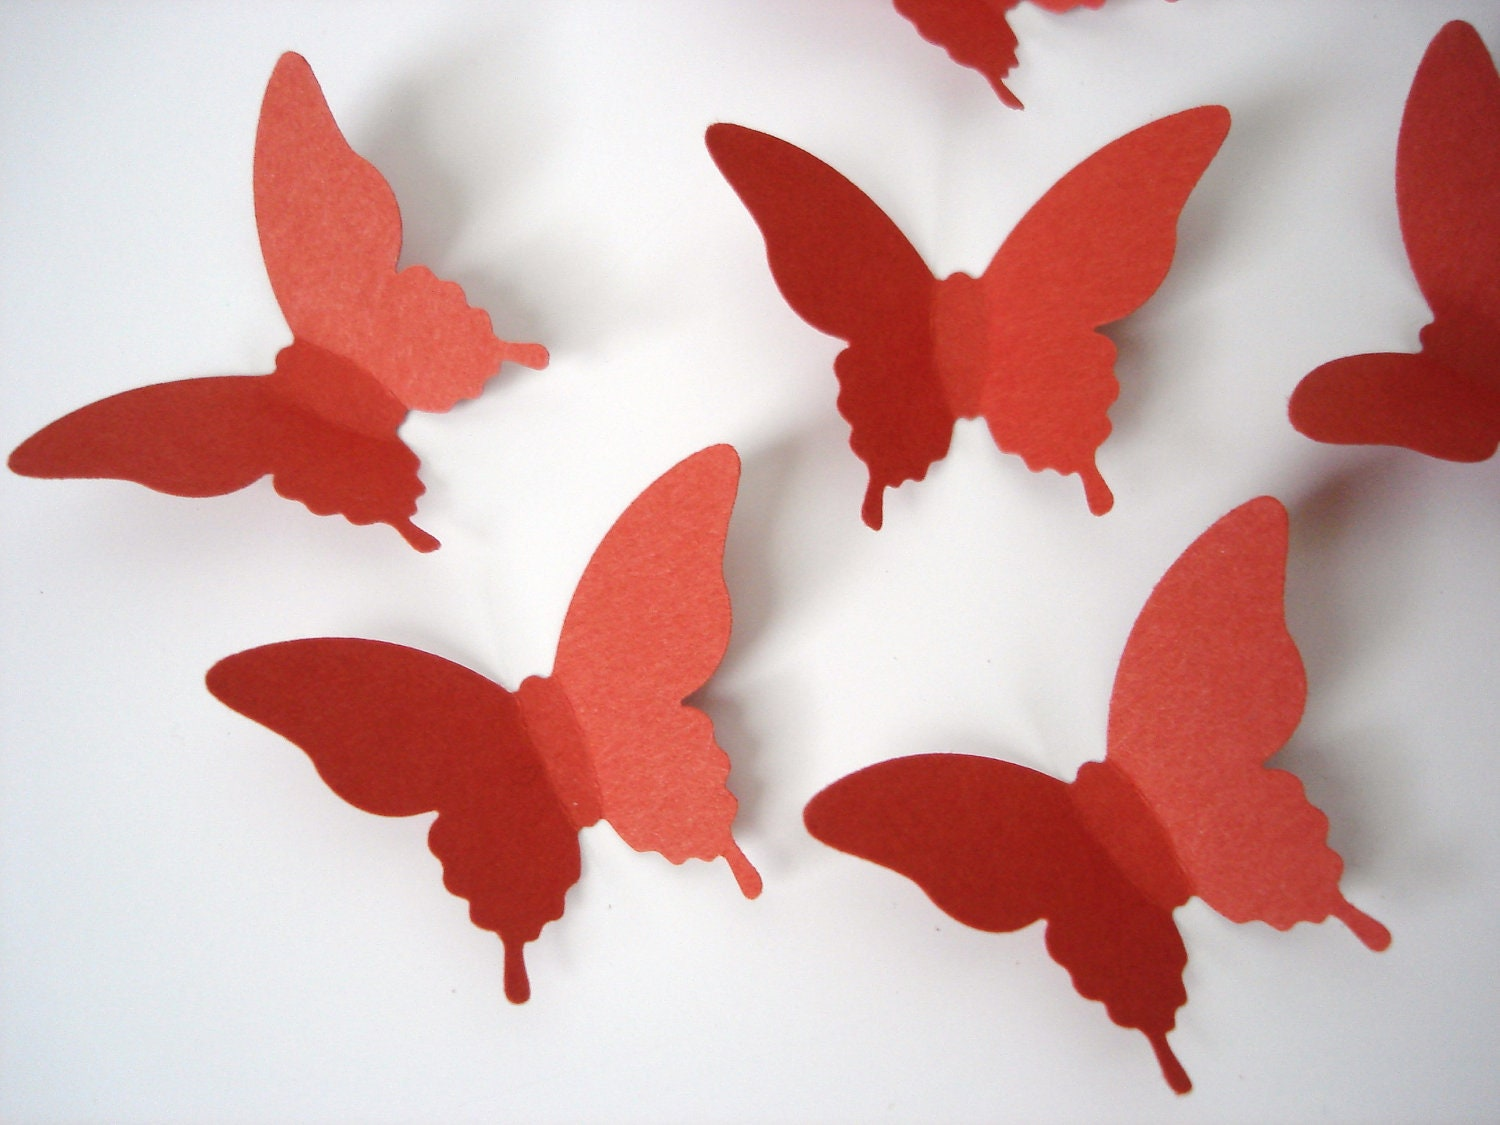 25 Dark Orange Elegant Butterfly Die Cuts Punch Wall Decor Scrapbook Embellishments - No669 - BelowBlink